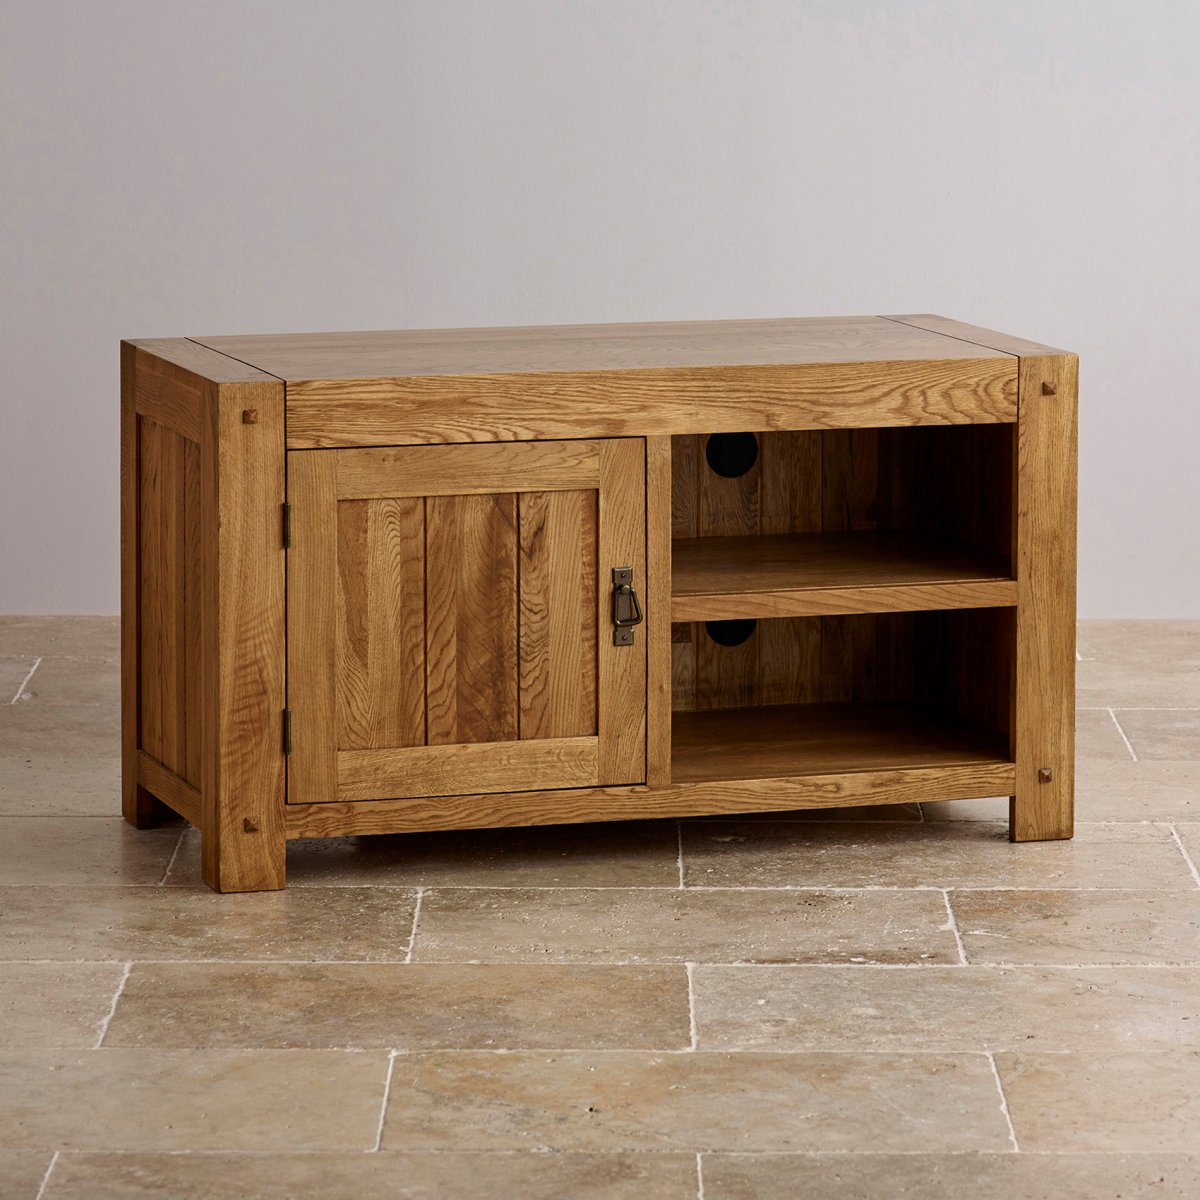 quercus tv cabinet in rustic solid oak oak furniture land. Black Bedroom Furniture Sets. Home Design Ideas